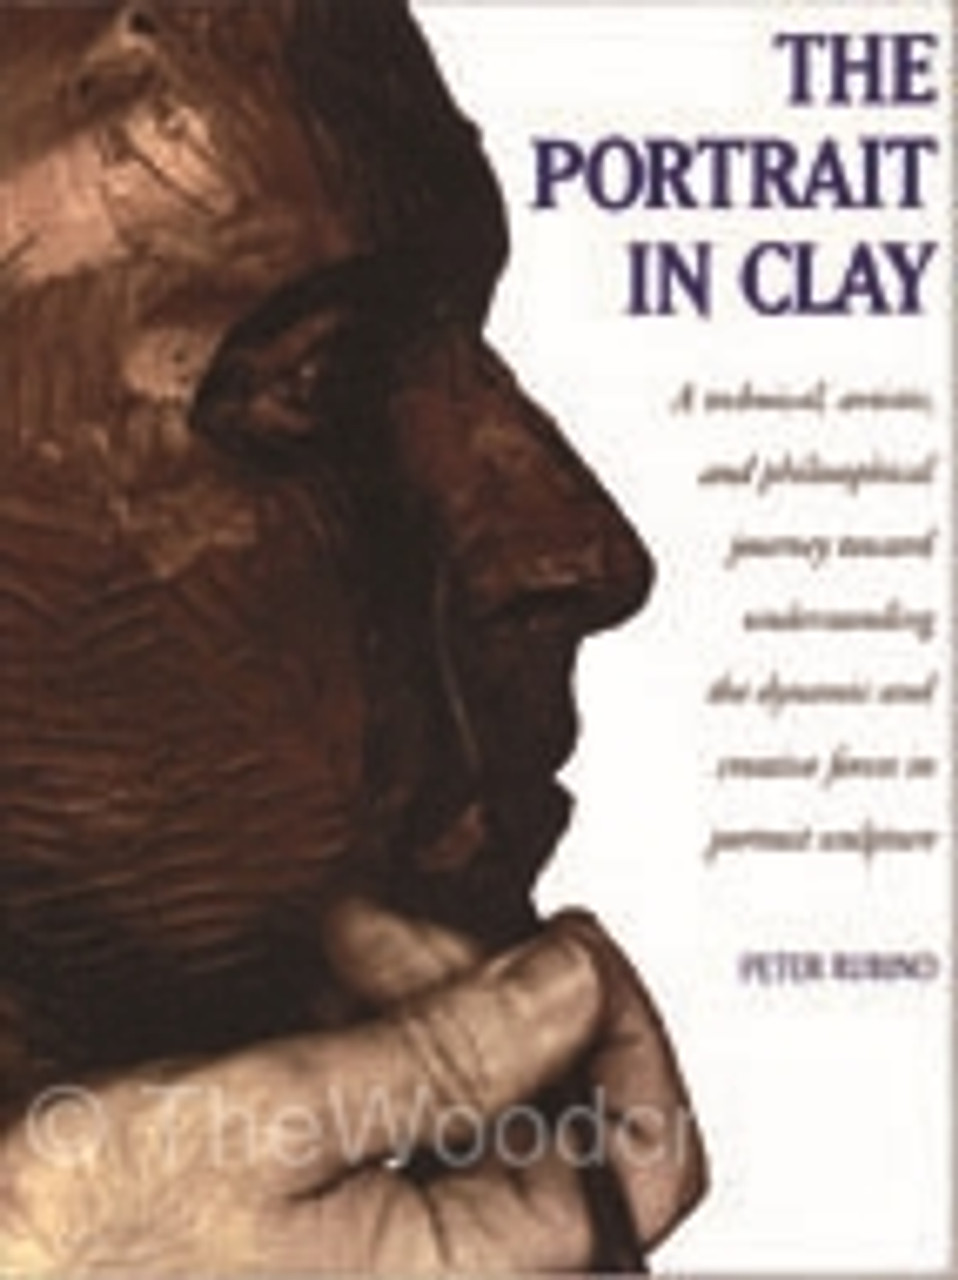 THE PORTRAIT IN CLAY - RUBINO